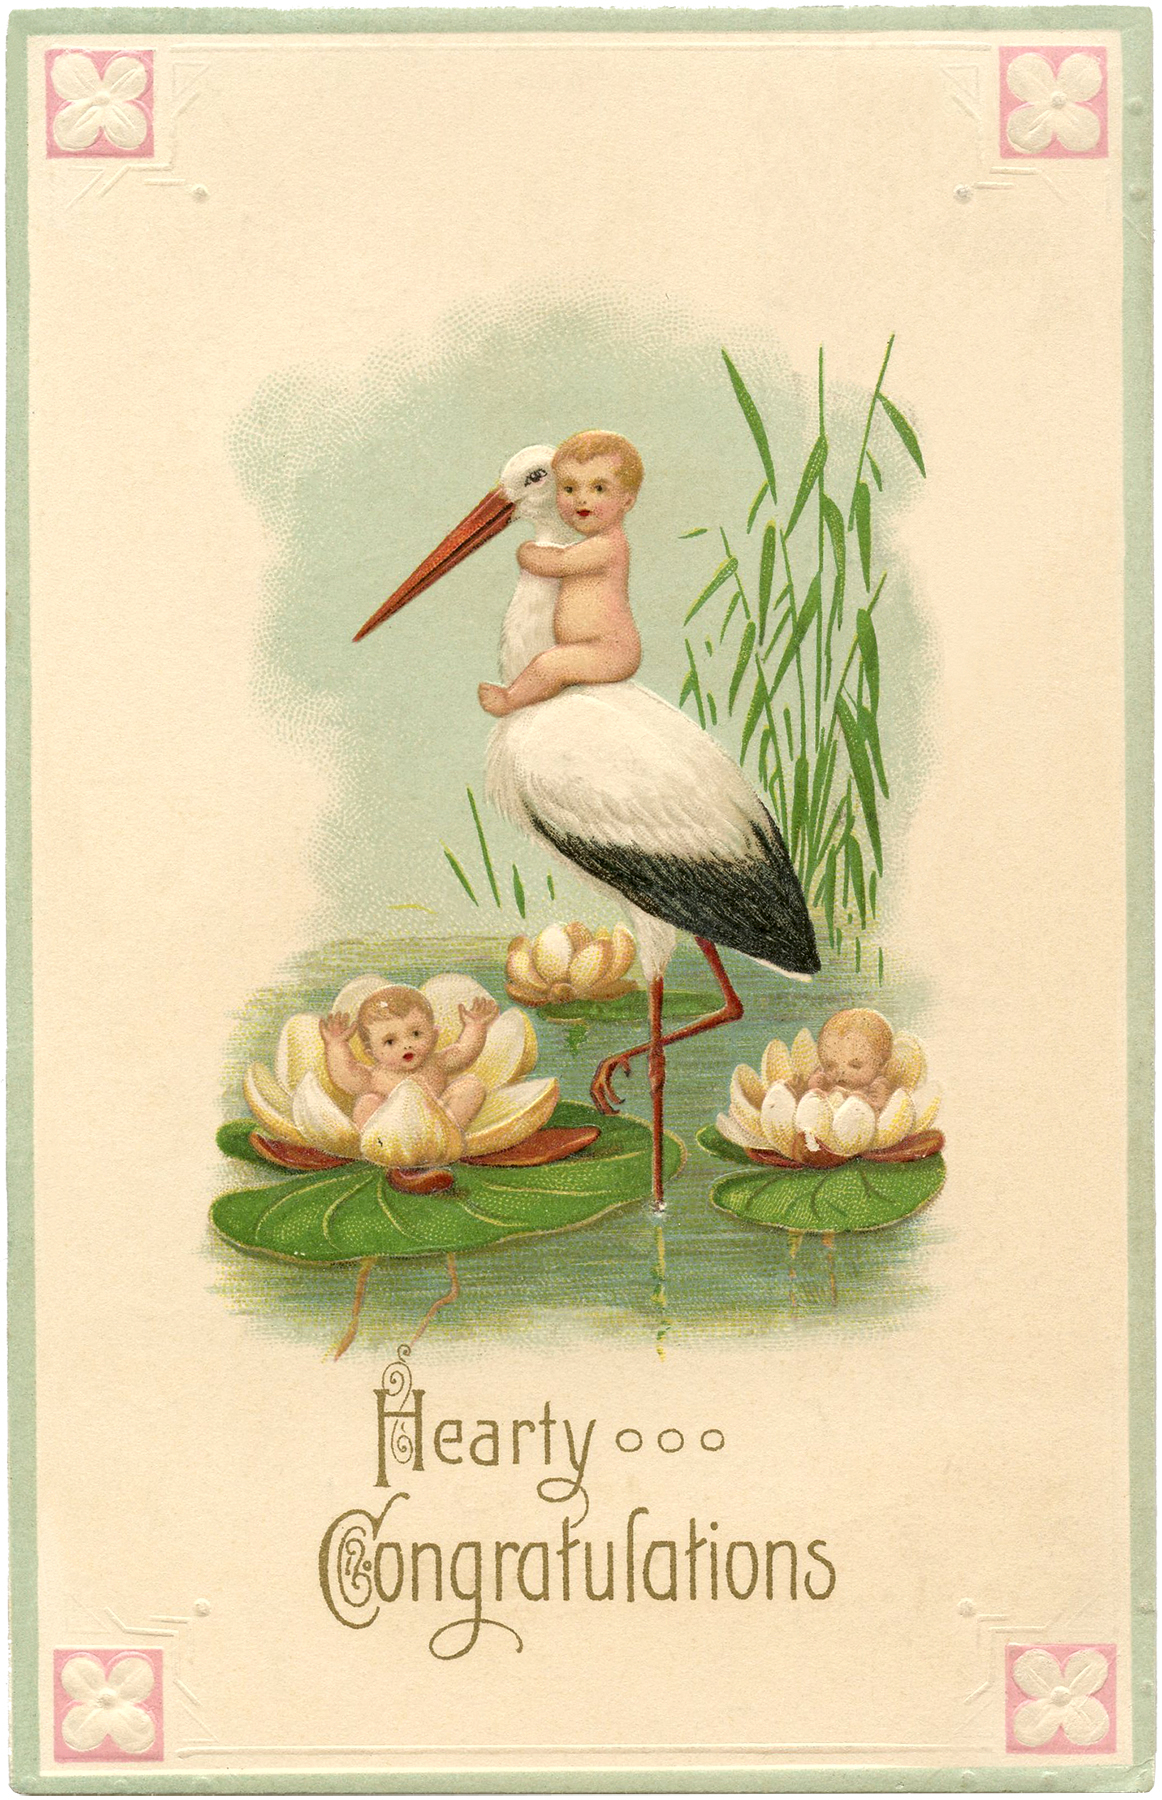 Cute Vintage Stork Card with Babies! - The Graphics Fairy